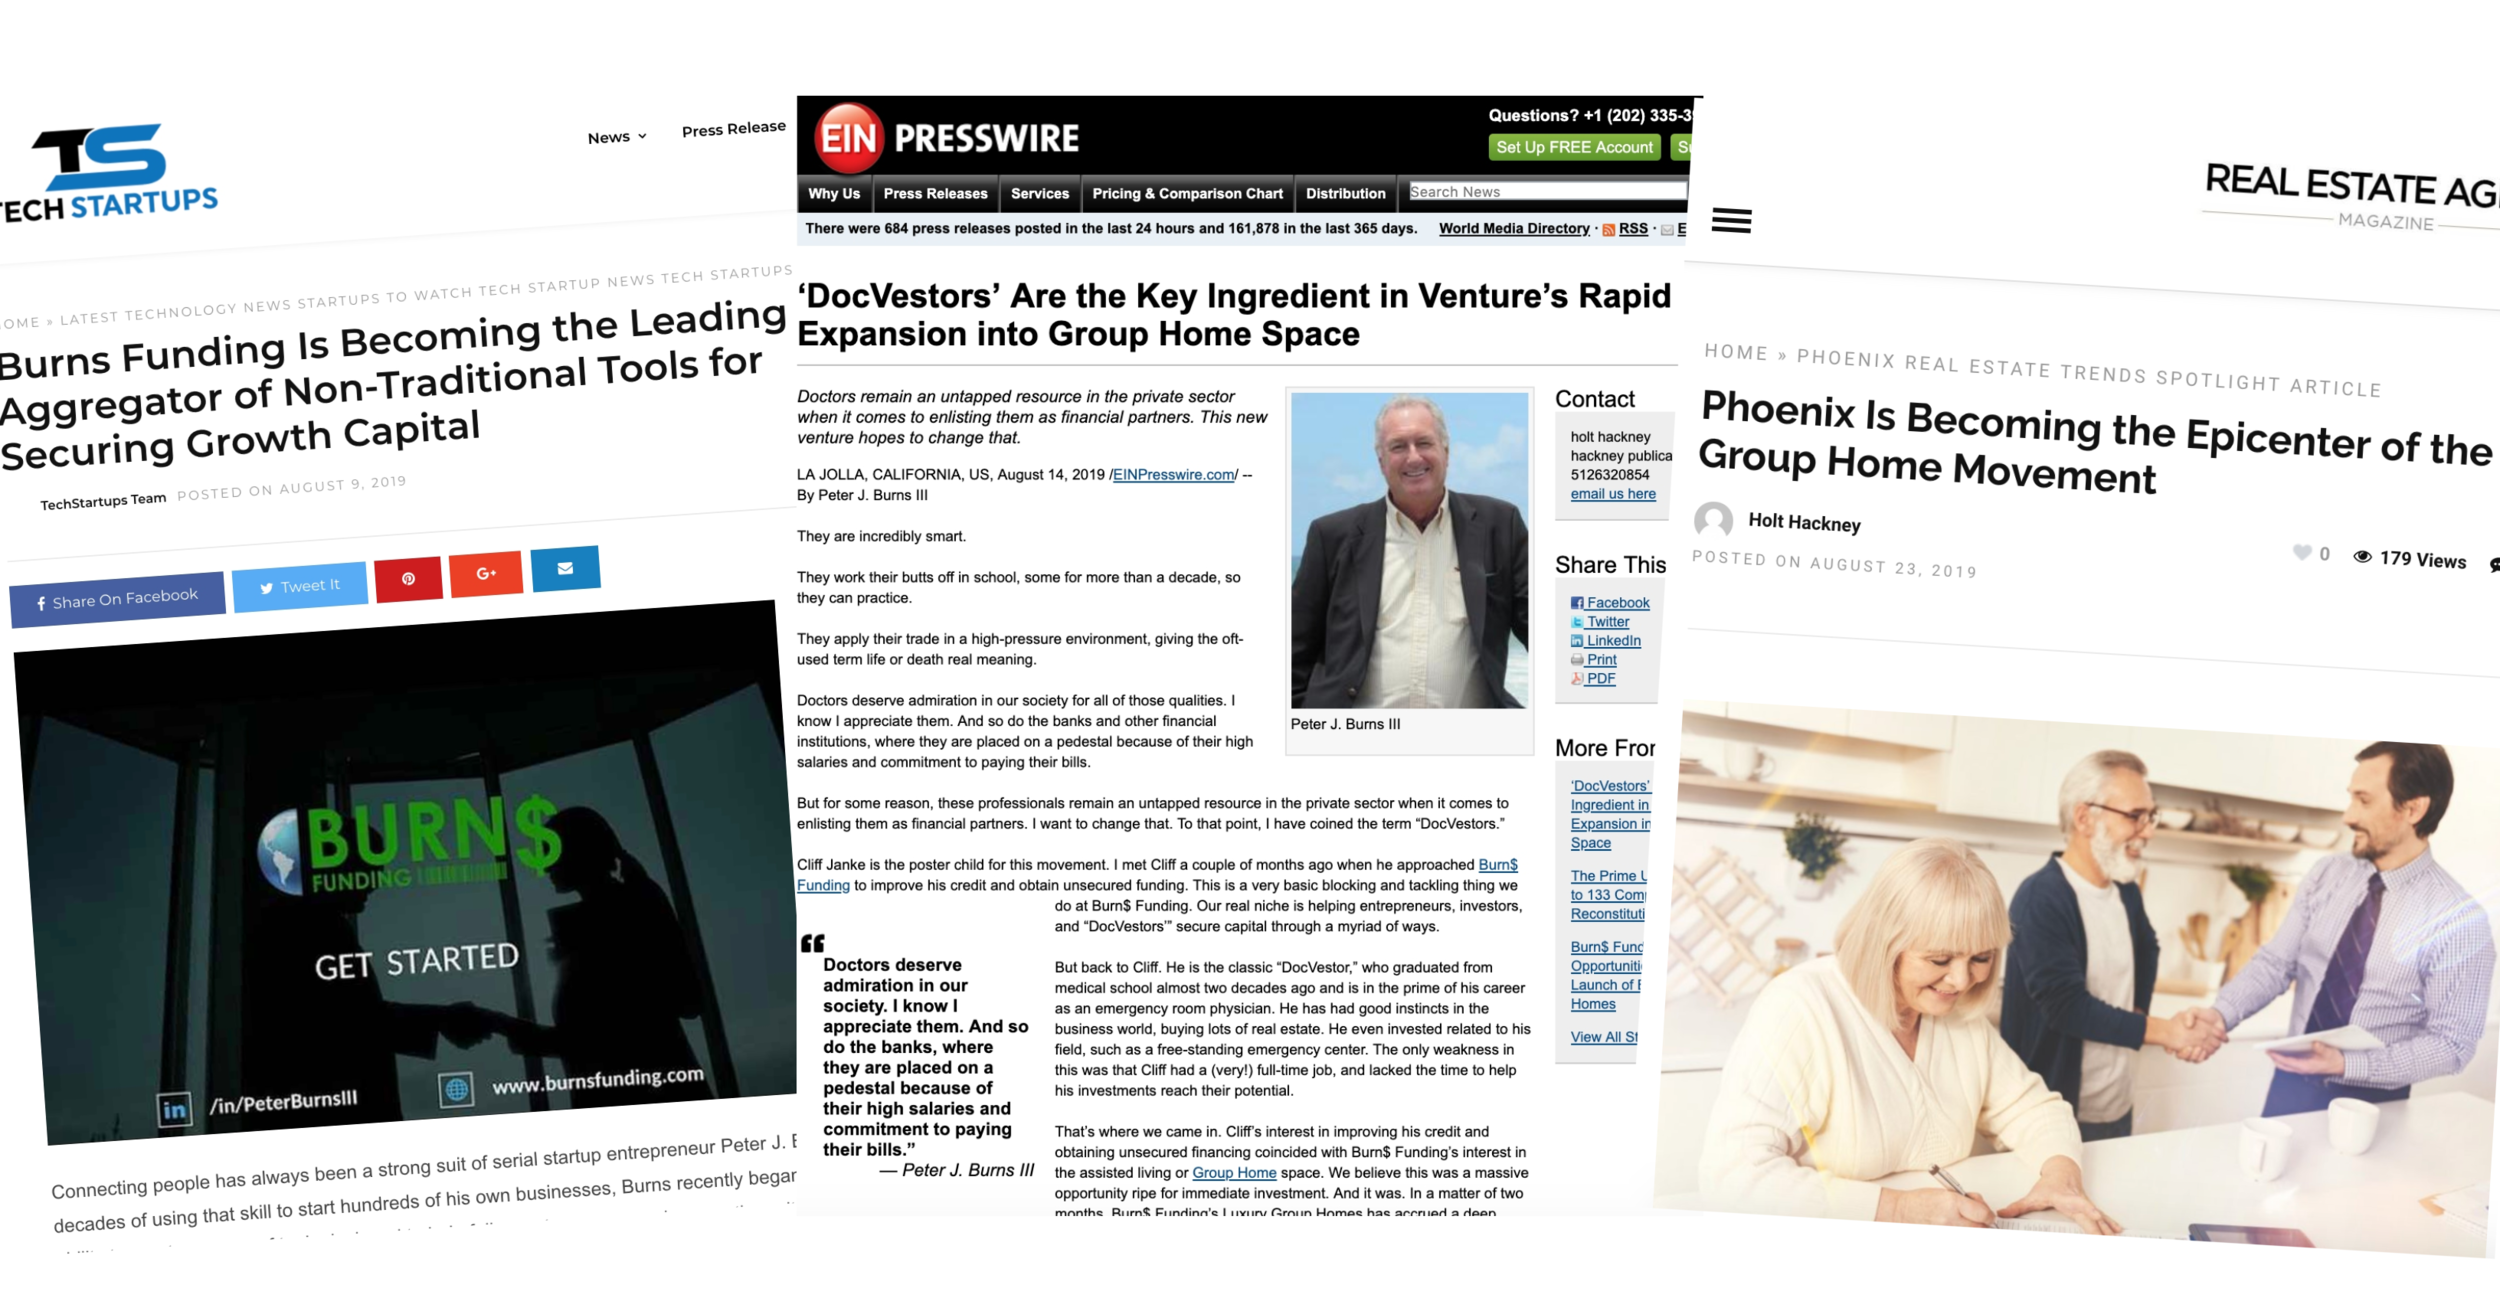 """EIN PressWire:  """" Burn$ Funding introduced Another Product – Blanket Loans – to Help Entrepreneurs """" (Sept. 2019)   Real Estate Agent Magazine:   """"Phoenix is Becoming the Epicenter of the Group Home Movement""""  (Sept 2019)   TECH STARTUPS:   """"Burns Funding is Becoming the Leading Aggregator of Non-Traditional Tolls for Securing Growth Capital""""    (Aug 2019)  EIN PressWire:   """"'DocVestors' Are the Key Ingredient in Venture's Rapid Expansion into Group Home Space""""  (Aug 2019)"""